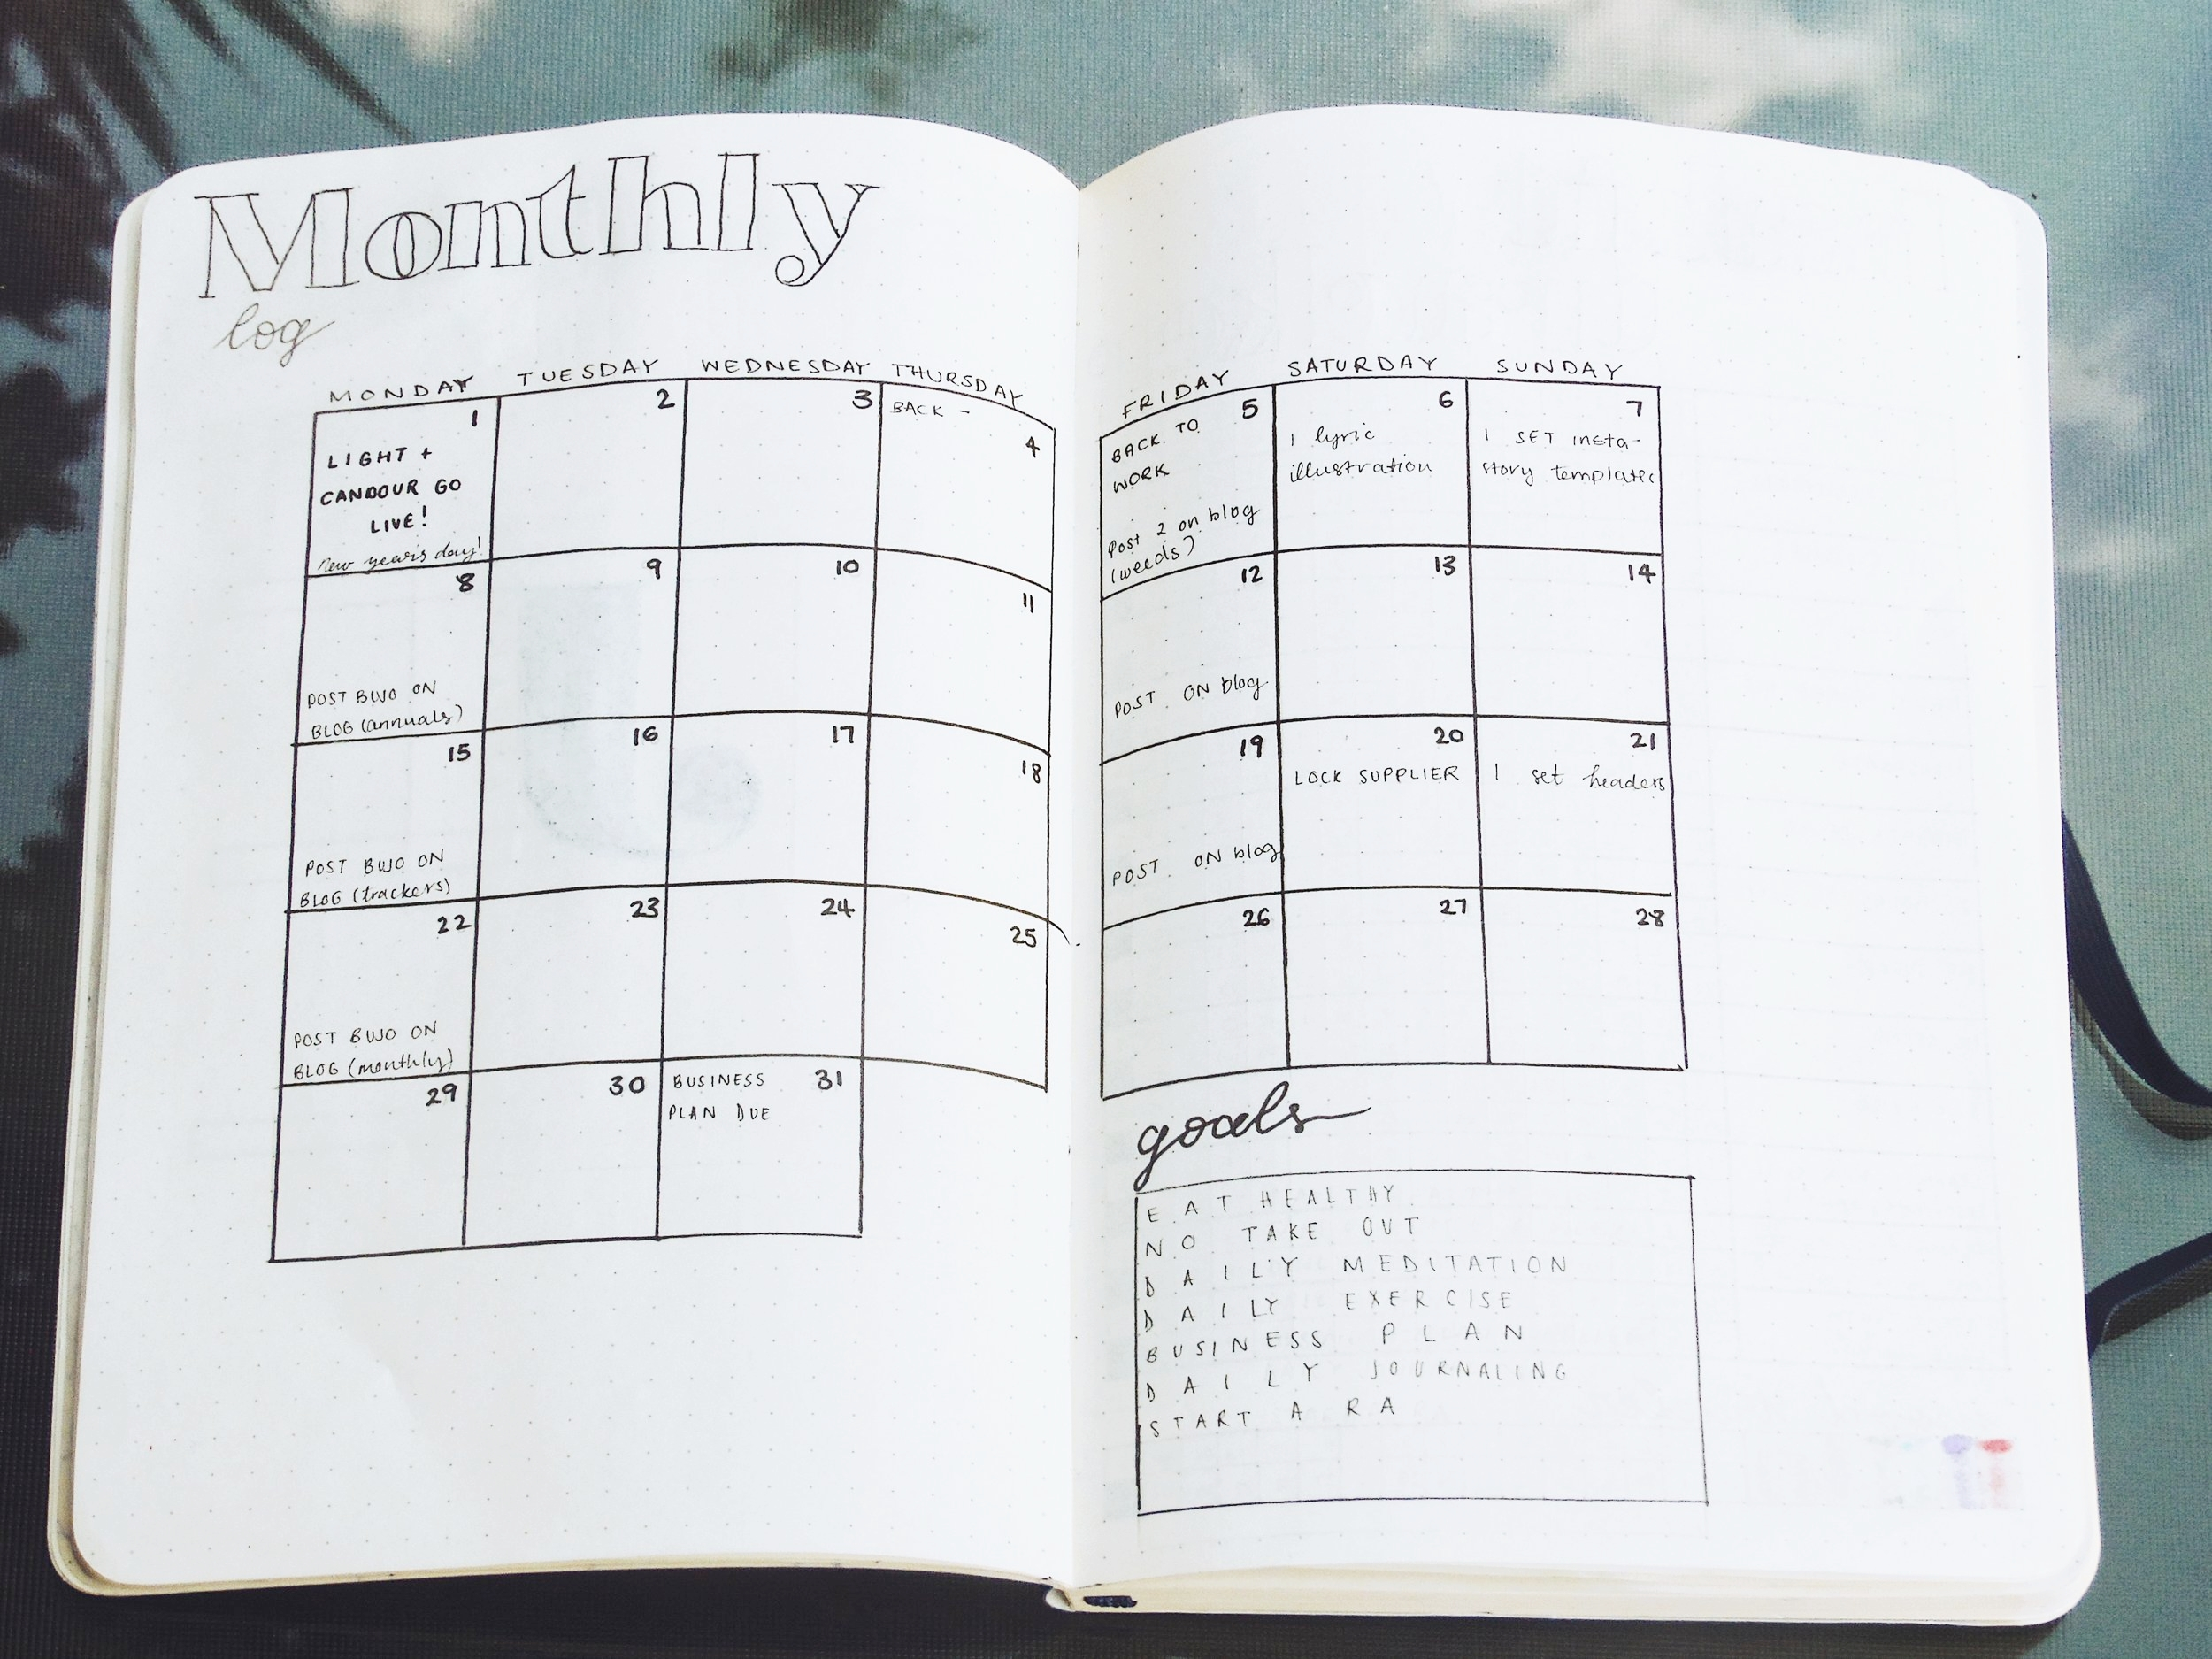 My January 2018 Monthly Log